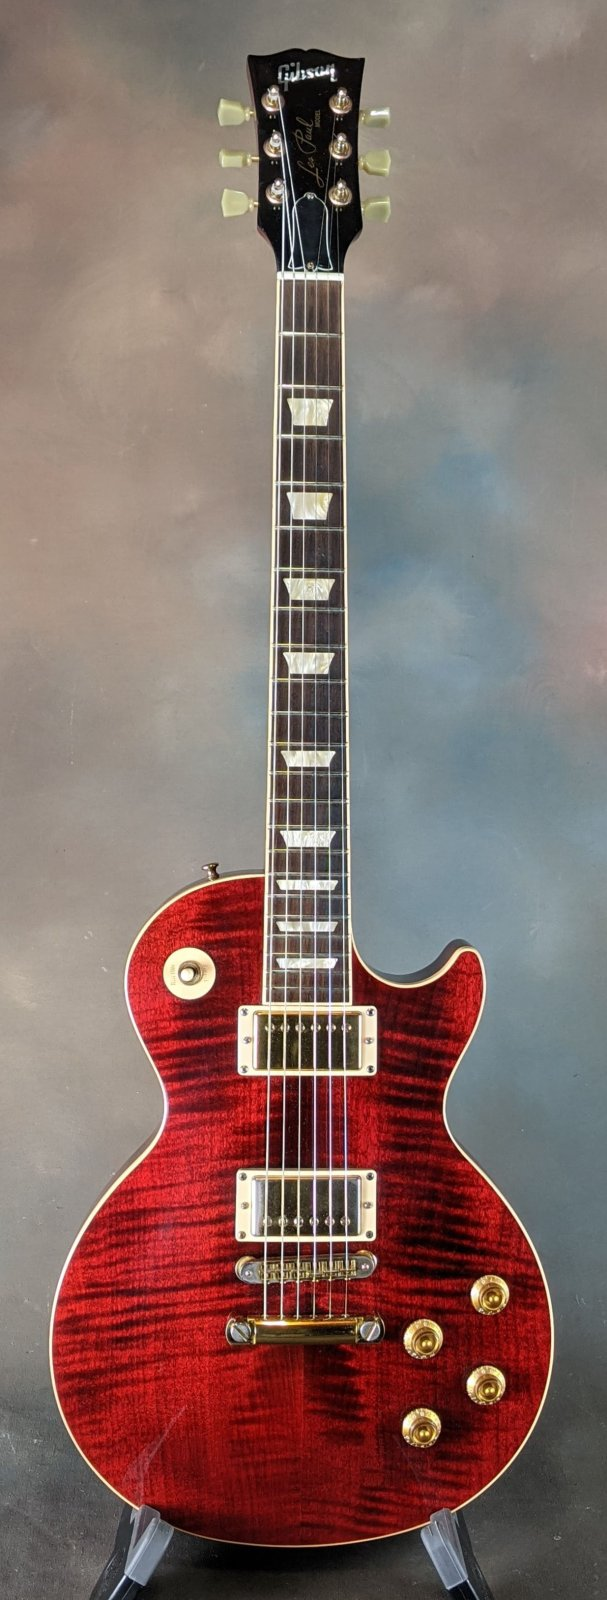 2005 Gibson Les Paul Standard Plus Top - Wine Red